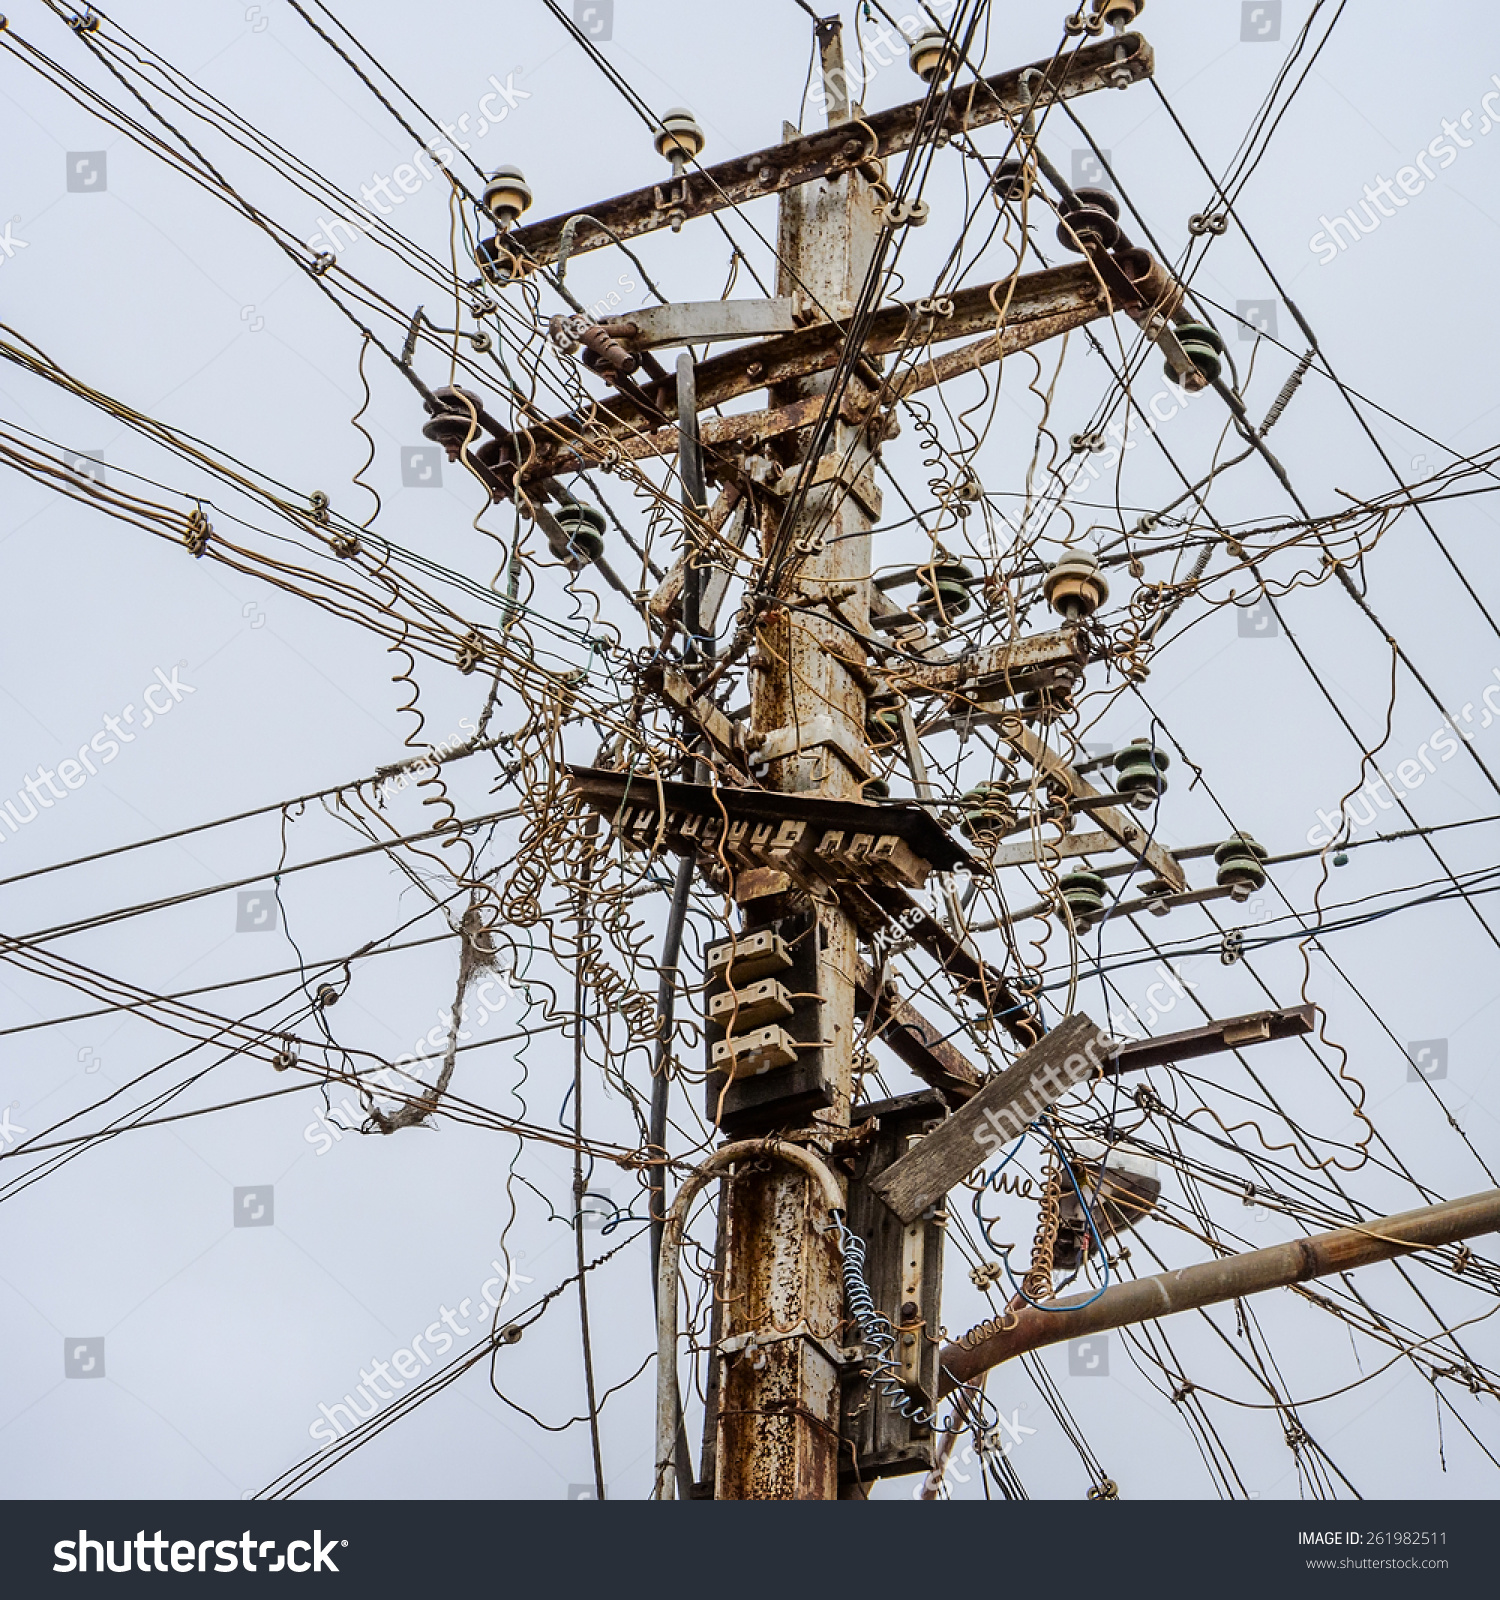 out focus messy electrical cables india stock photo 261982511